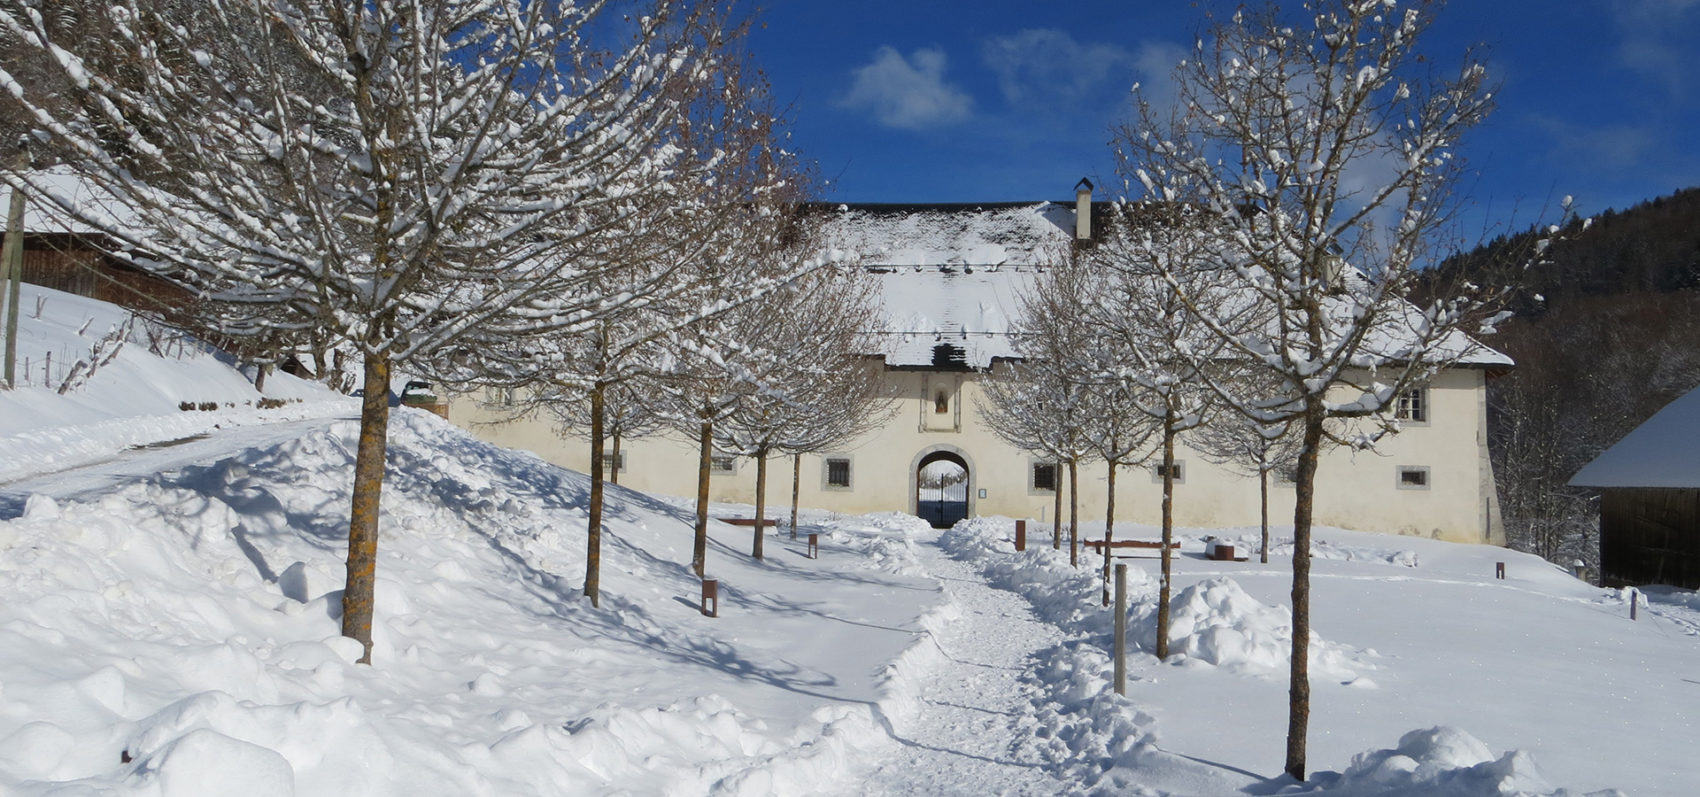 Chartreuse Aillon neige hiver